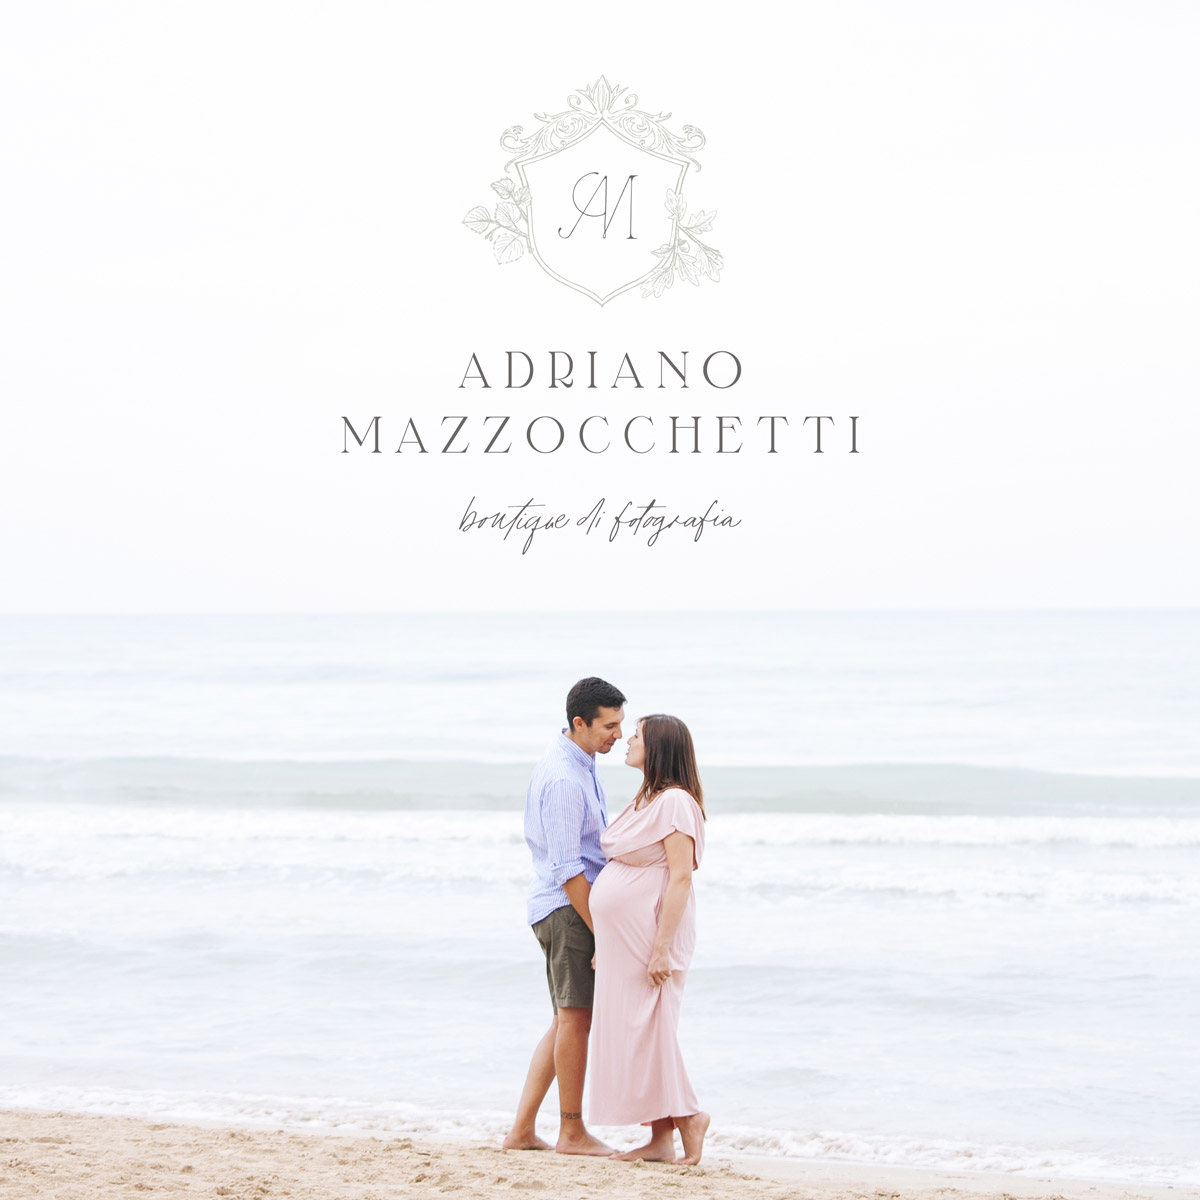 Behind-the-scenes of my logo design process. Logo design and variations for Adriano Mazzocchetti wedding and portrait photographer - Miel Café Design